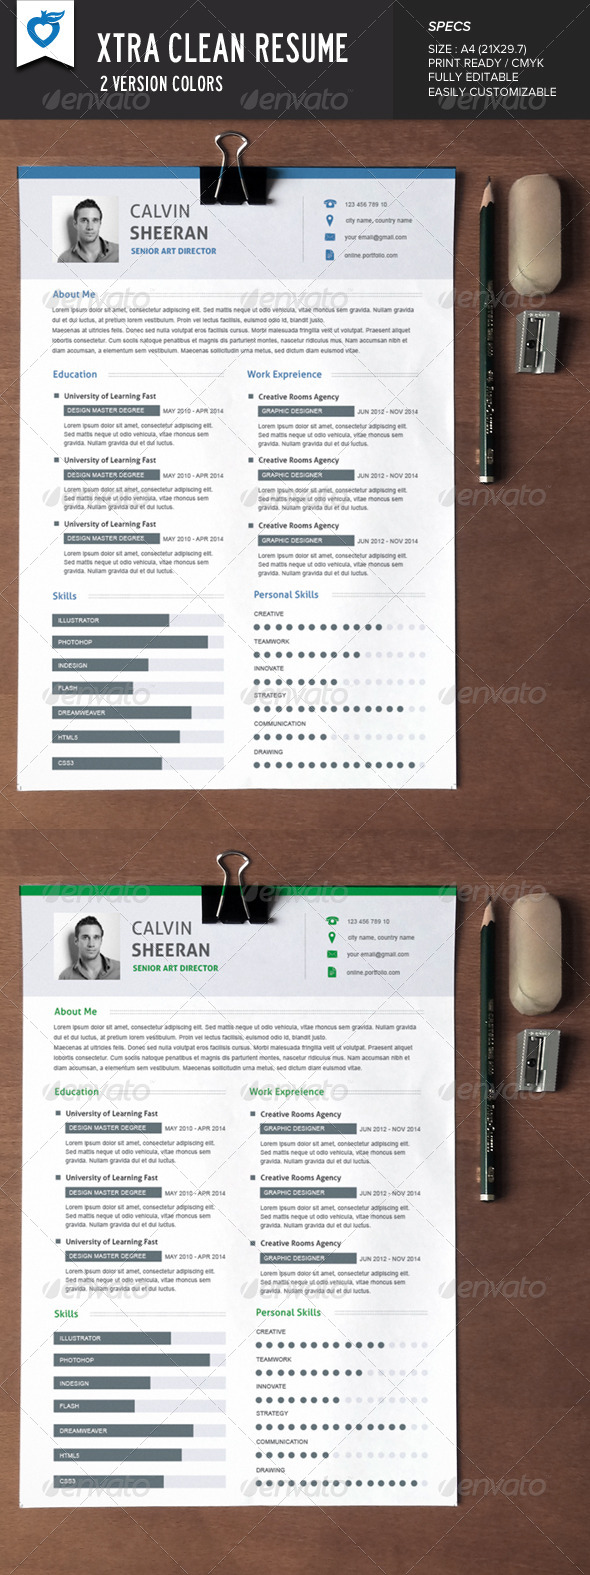 Xtra Clean Resume